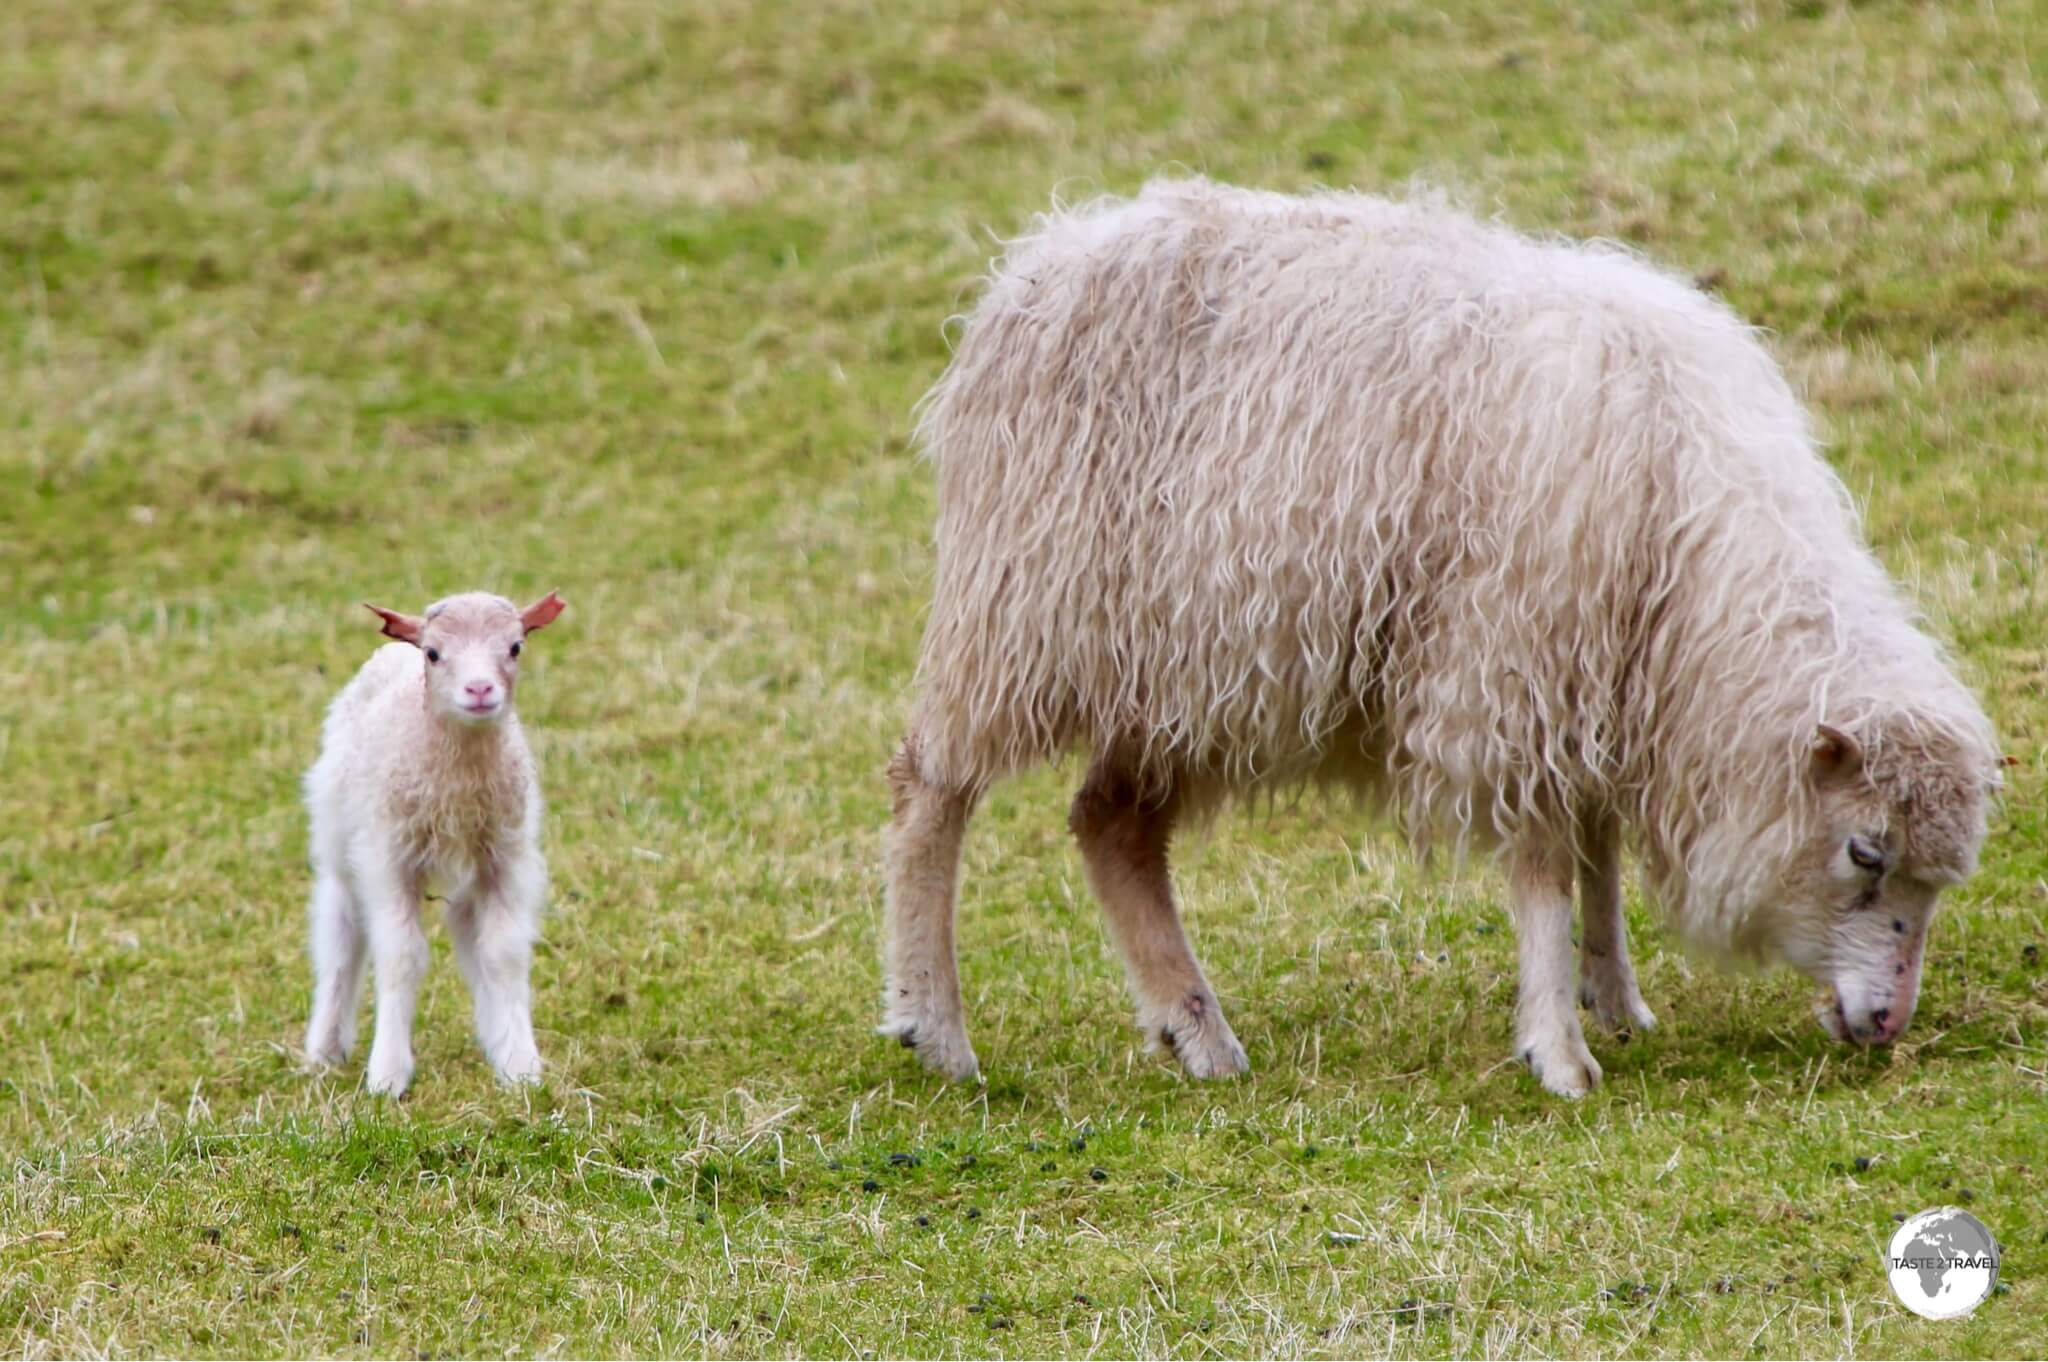 The name 'Faroe' is an old Norse word for 'Sheep' which are plentiful on the islands.